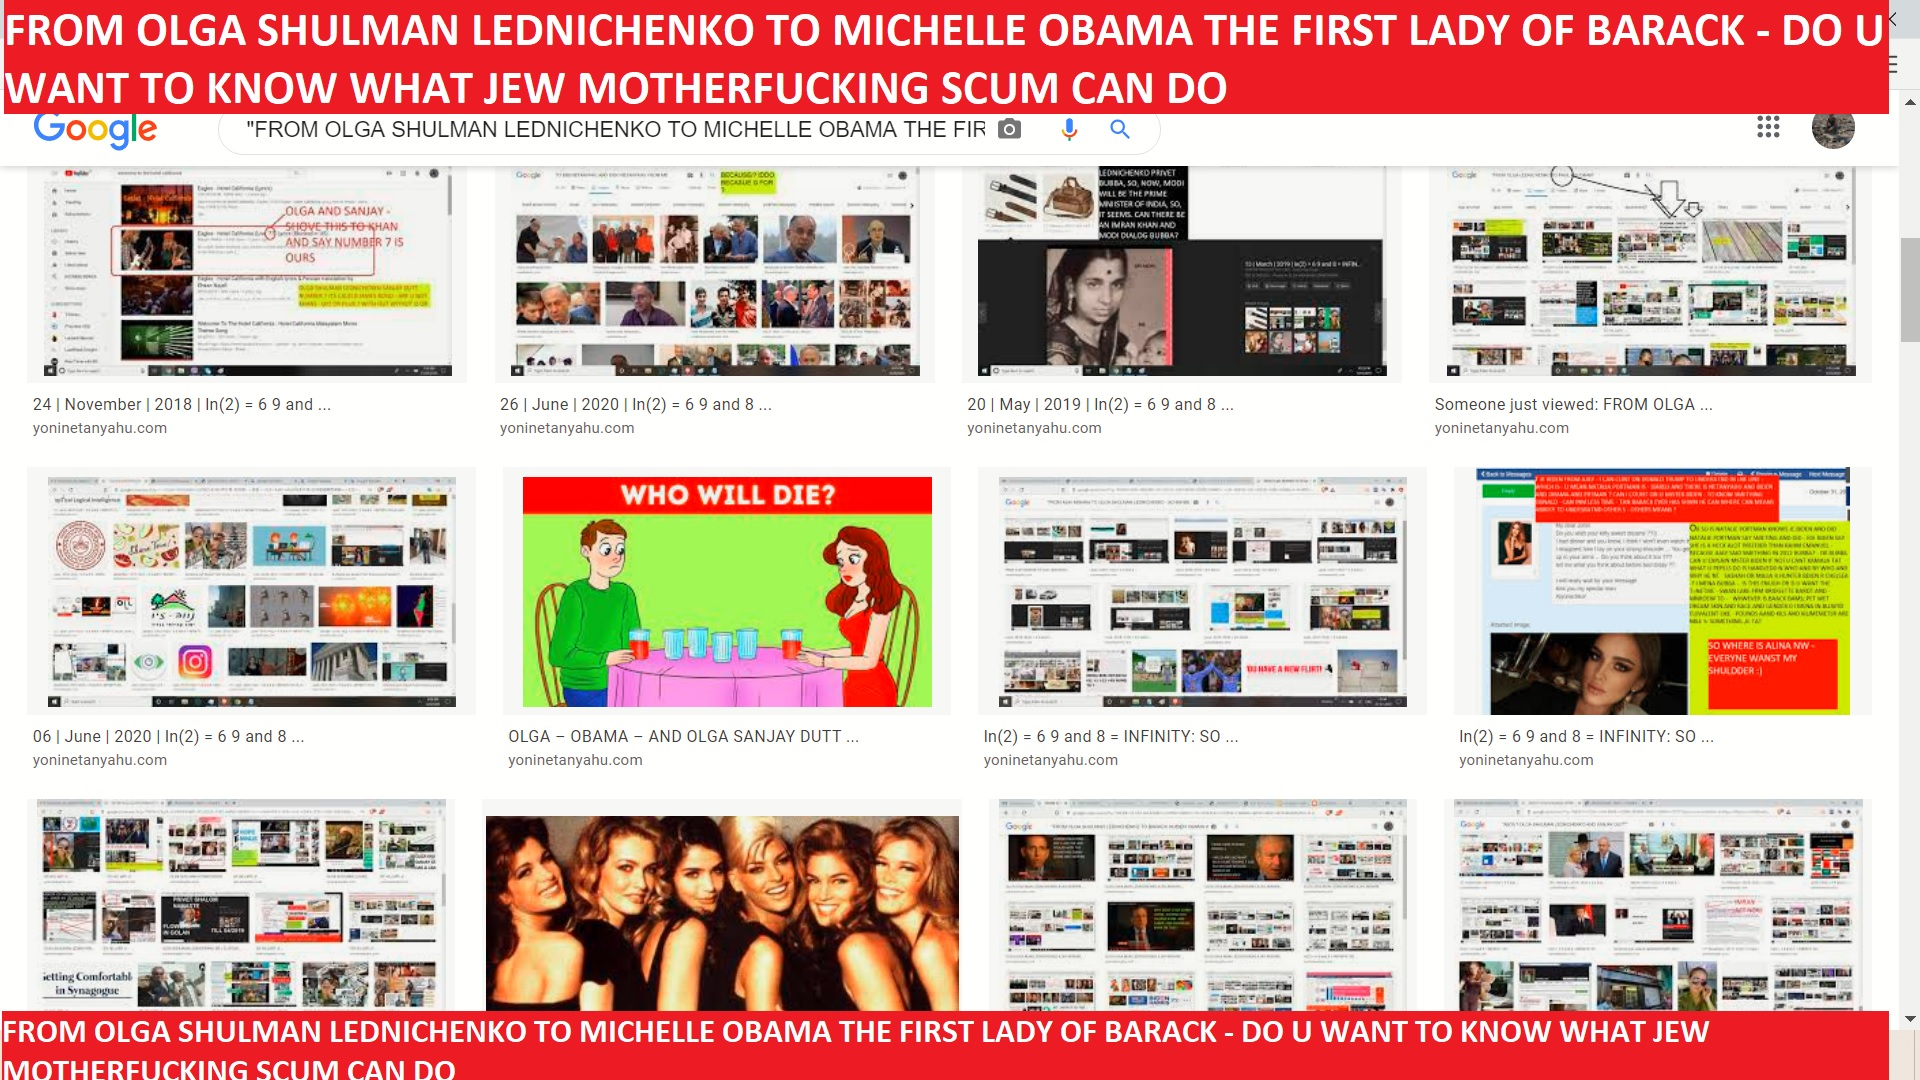 FROM OLGA SHULMAN LEDNICHENKO TO MICHELLE OBAMA THE FIRST LADY OF BARACK - DO U WANT TO KNOW WHAT JEW MOTHERFUCKING SCUM CAN DO ==